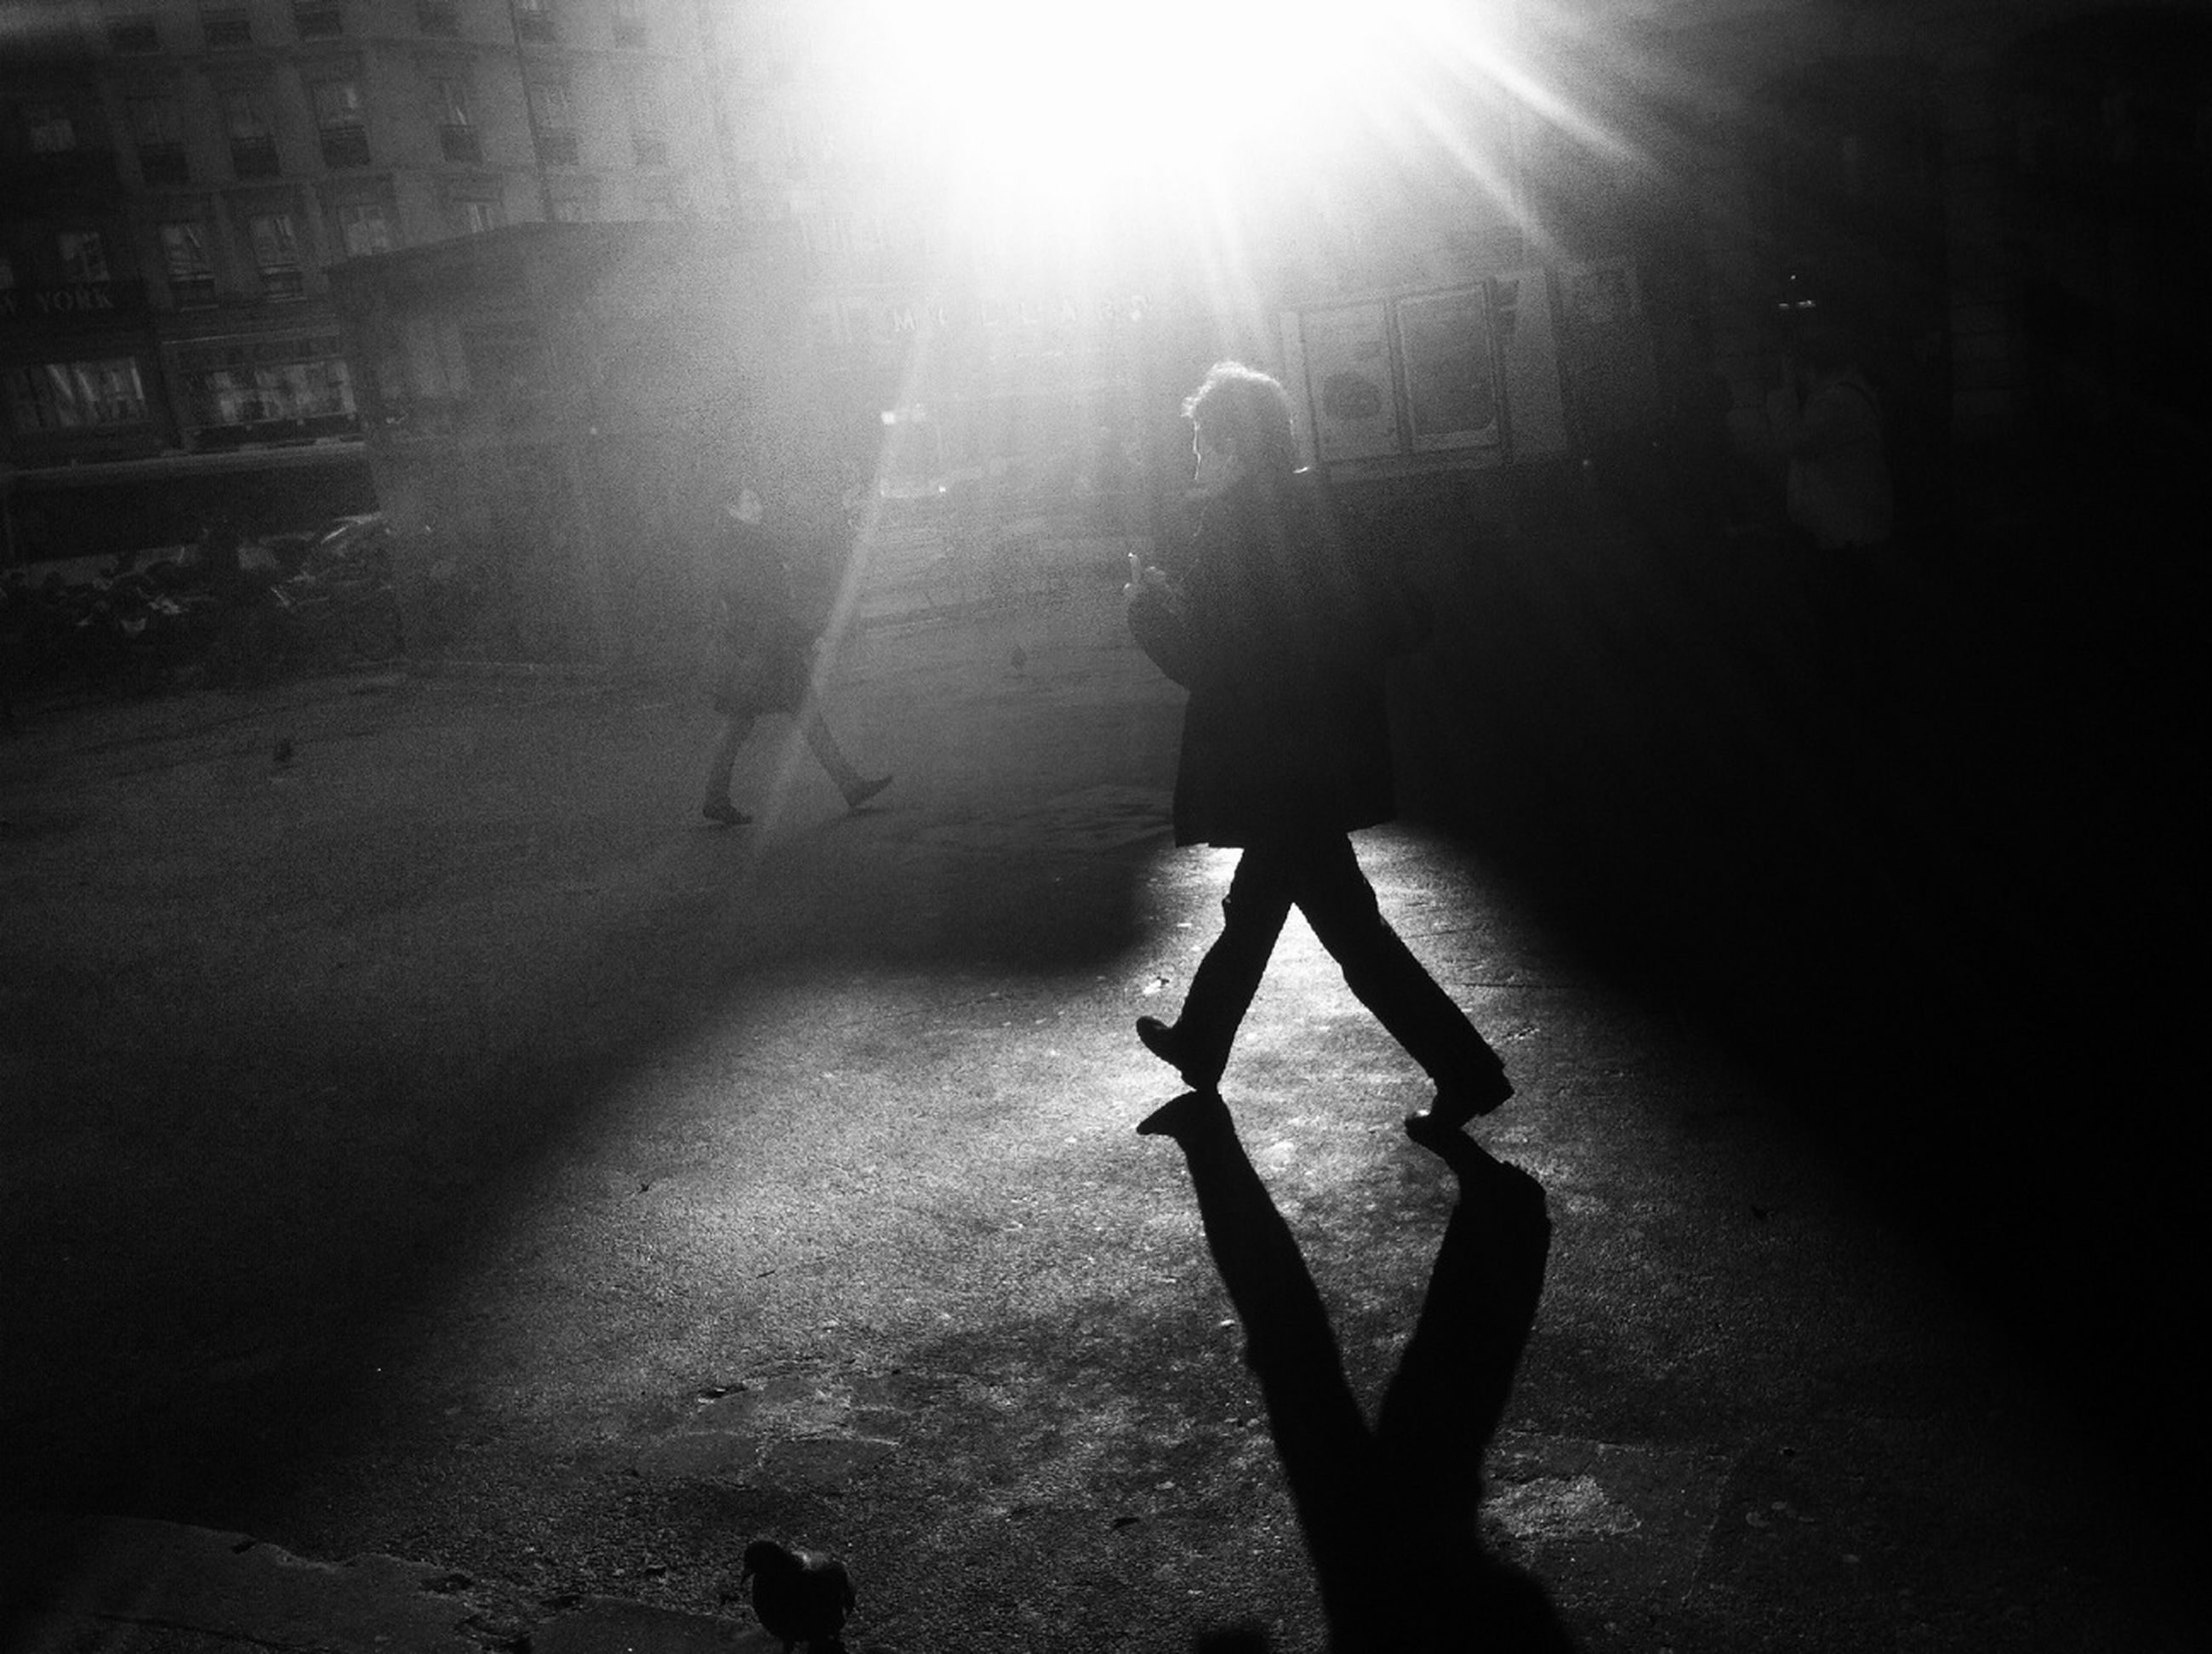 lifestyles, shadow, leisure activity, sunlight, silhouette, walking, men, sunbeam, full length, night, lens flare, standing, street, person, sun, unrecognizable person, sunny